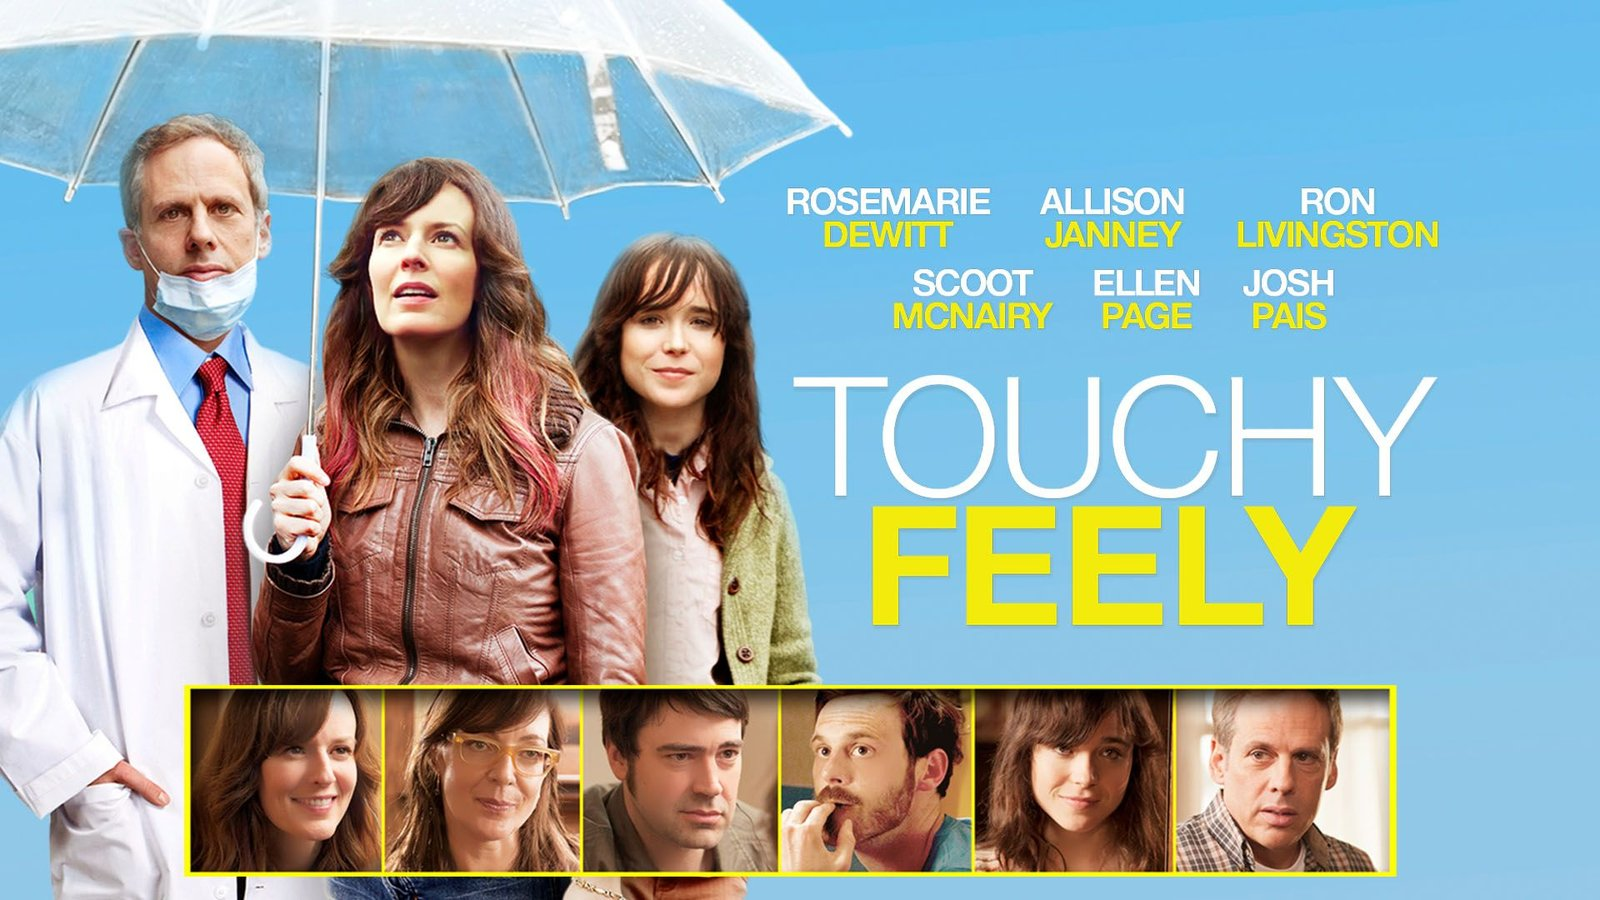 Touchy Feely